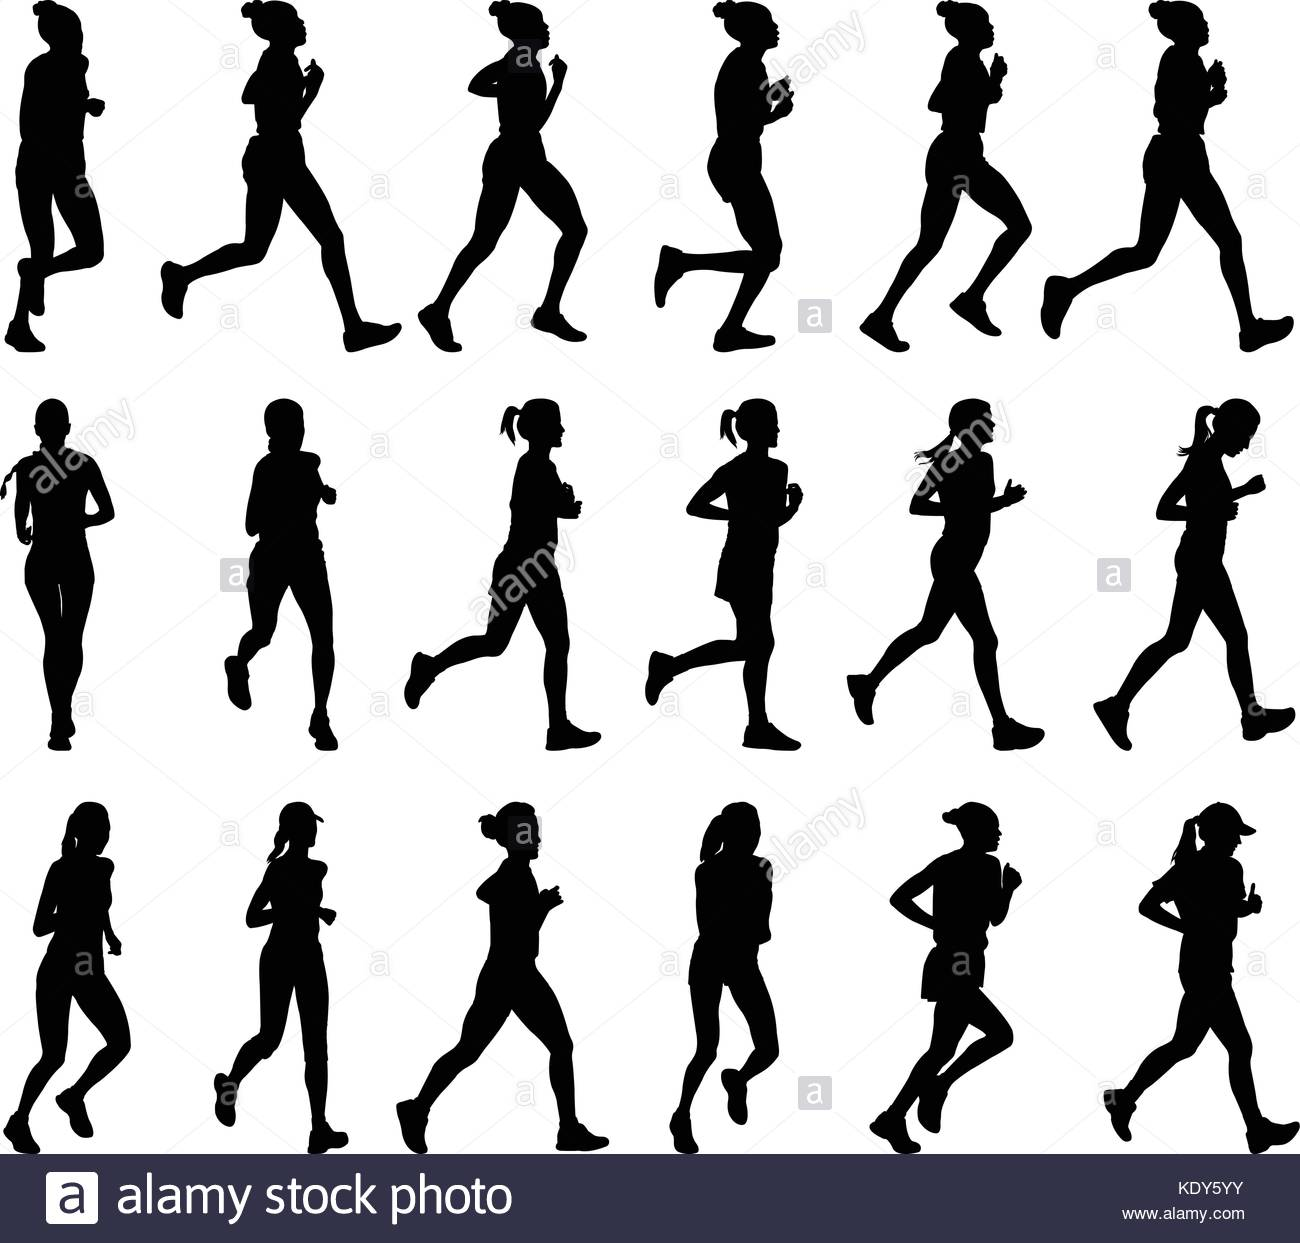 1300x1243 18 High Quality Female Marathon Runners Silhouettes